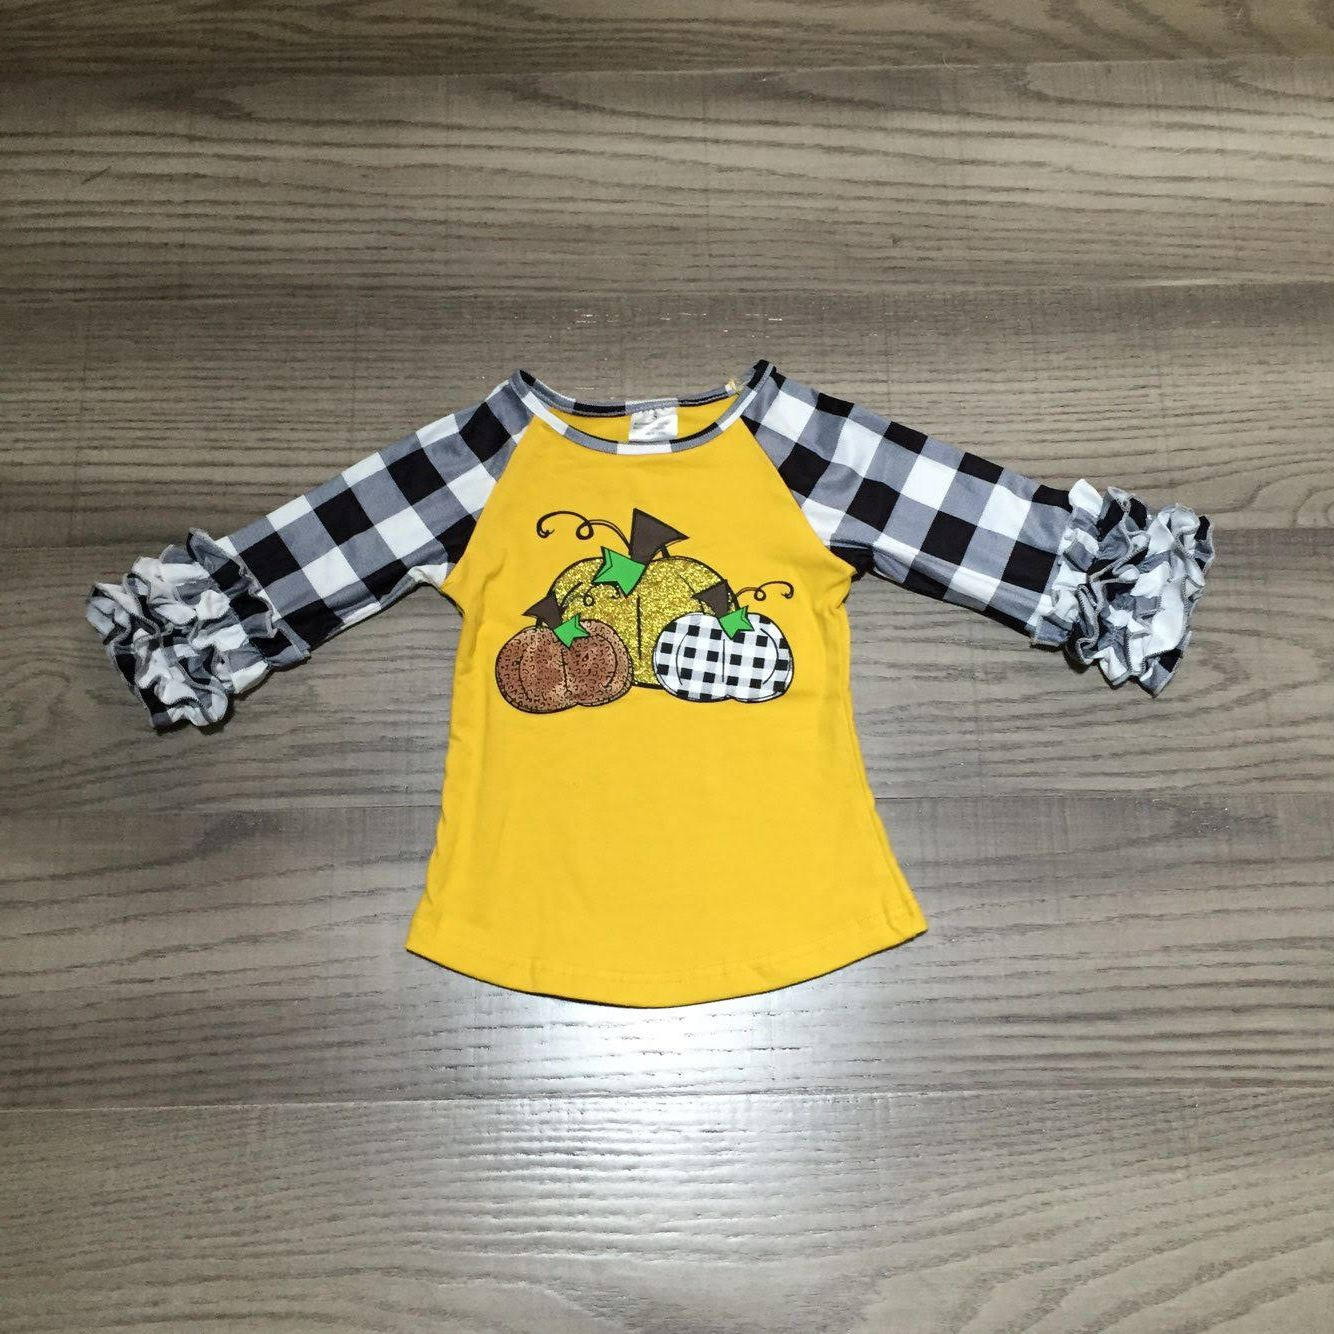 [PREORDER] Buffalo Plaid / Golden Pumpkins Ruffle Sleeve Tee - Fall Preorder